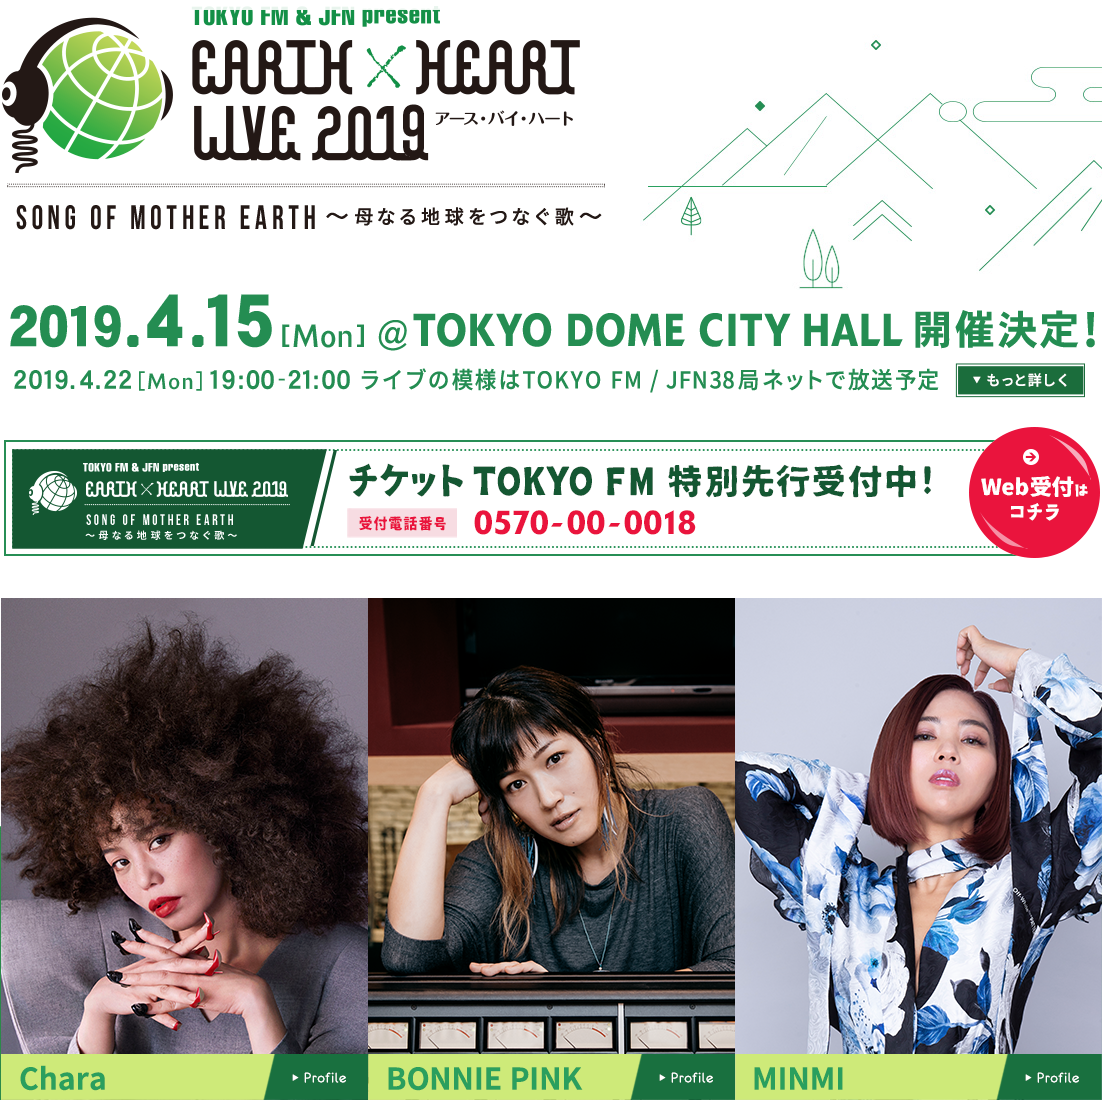 MINMI EARTH×HEART LIVE 2019